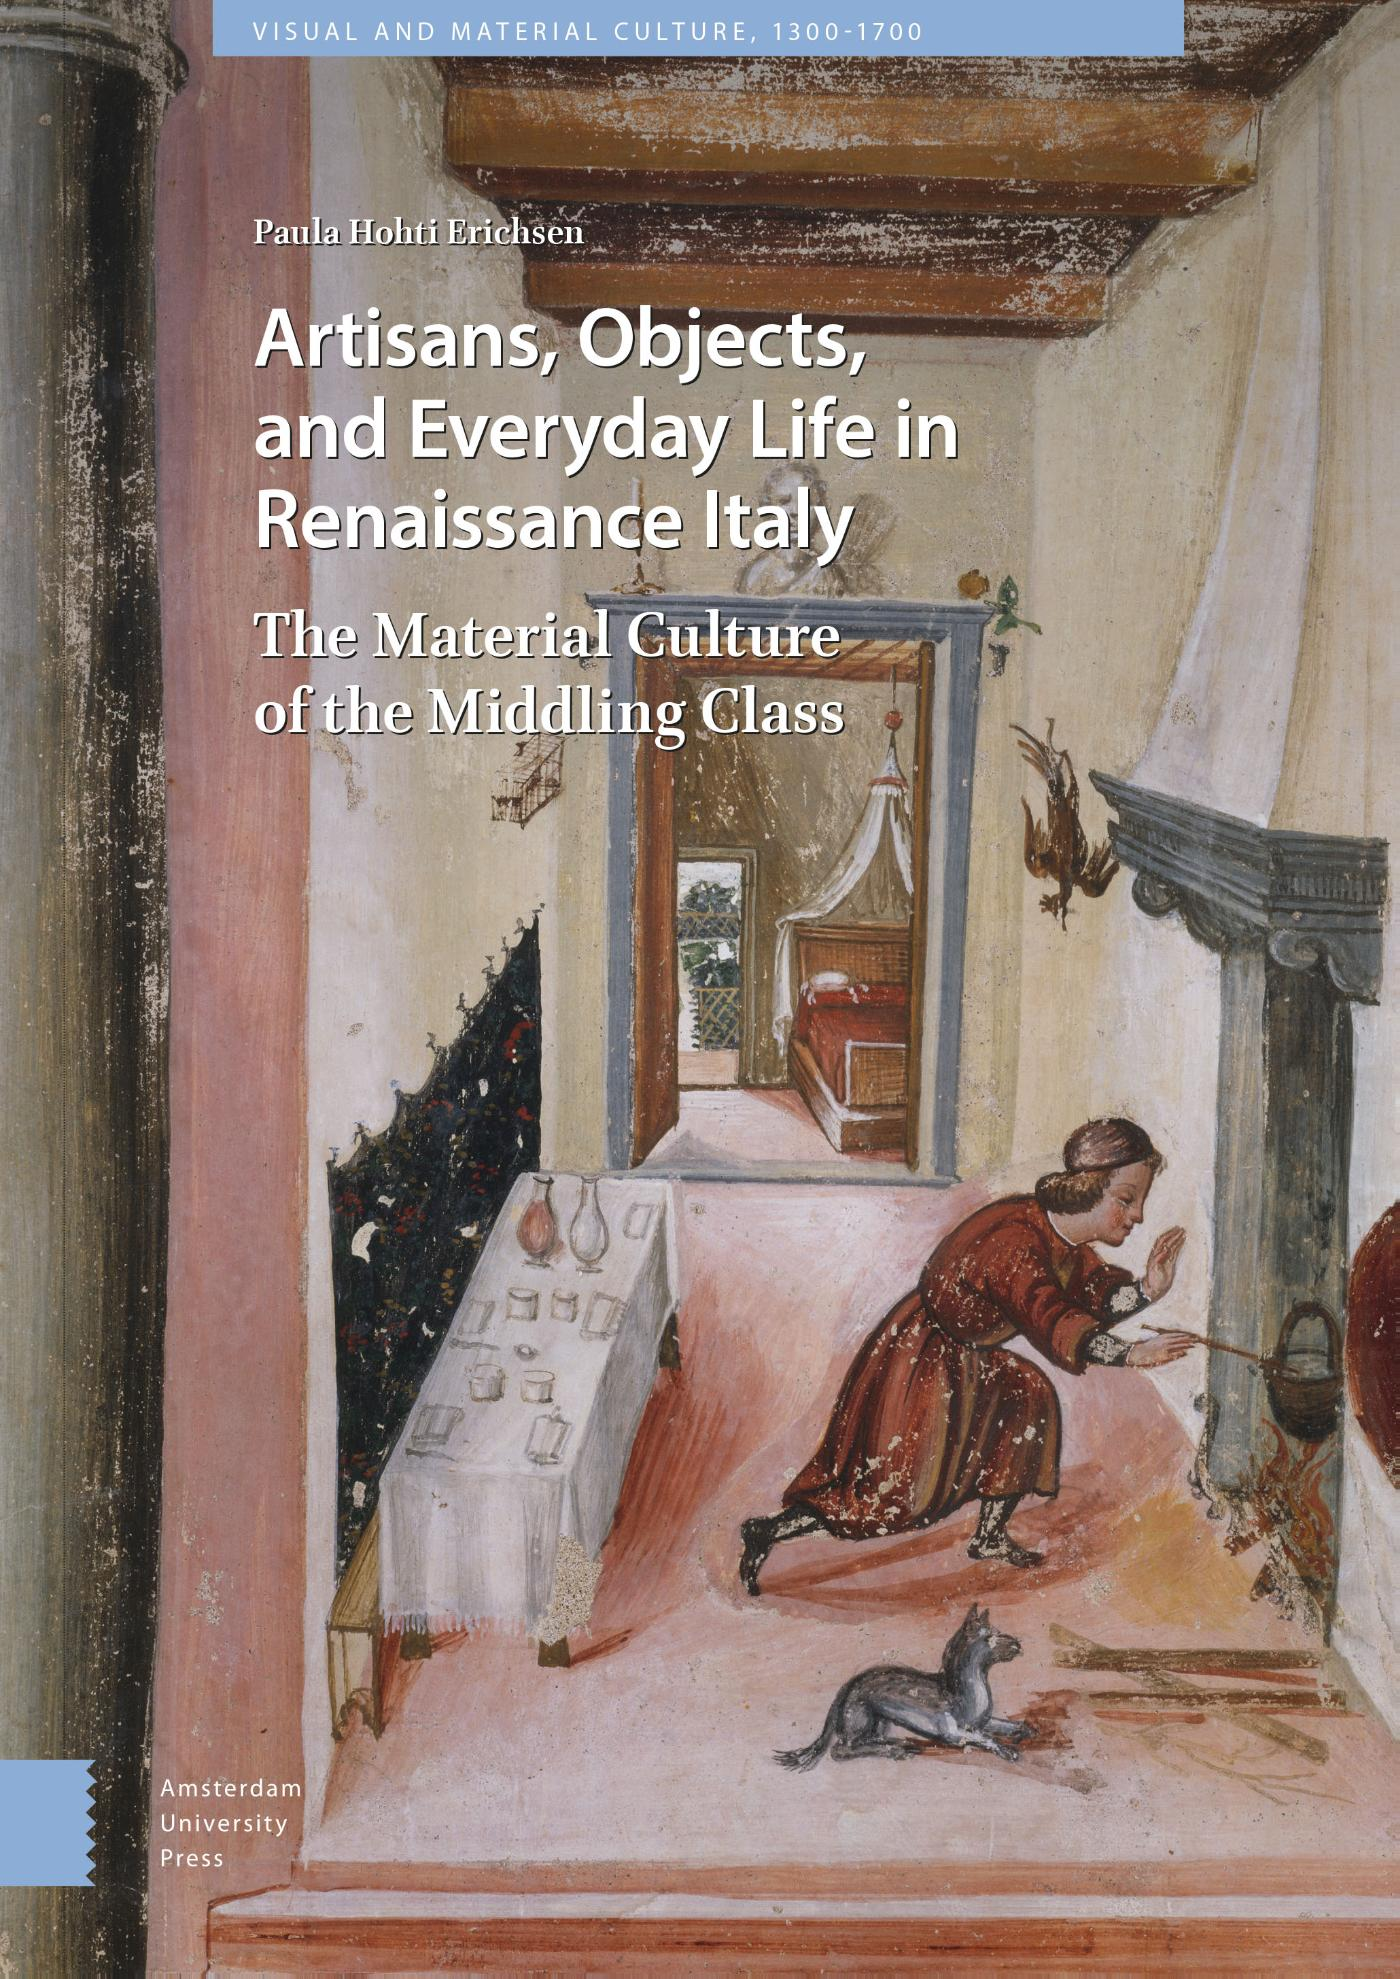 Artisans, Objects and Everyday Life in Renaissance Italy